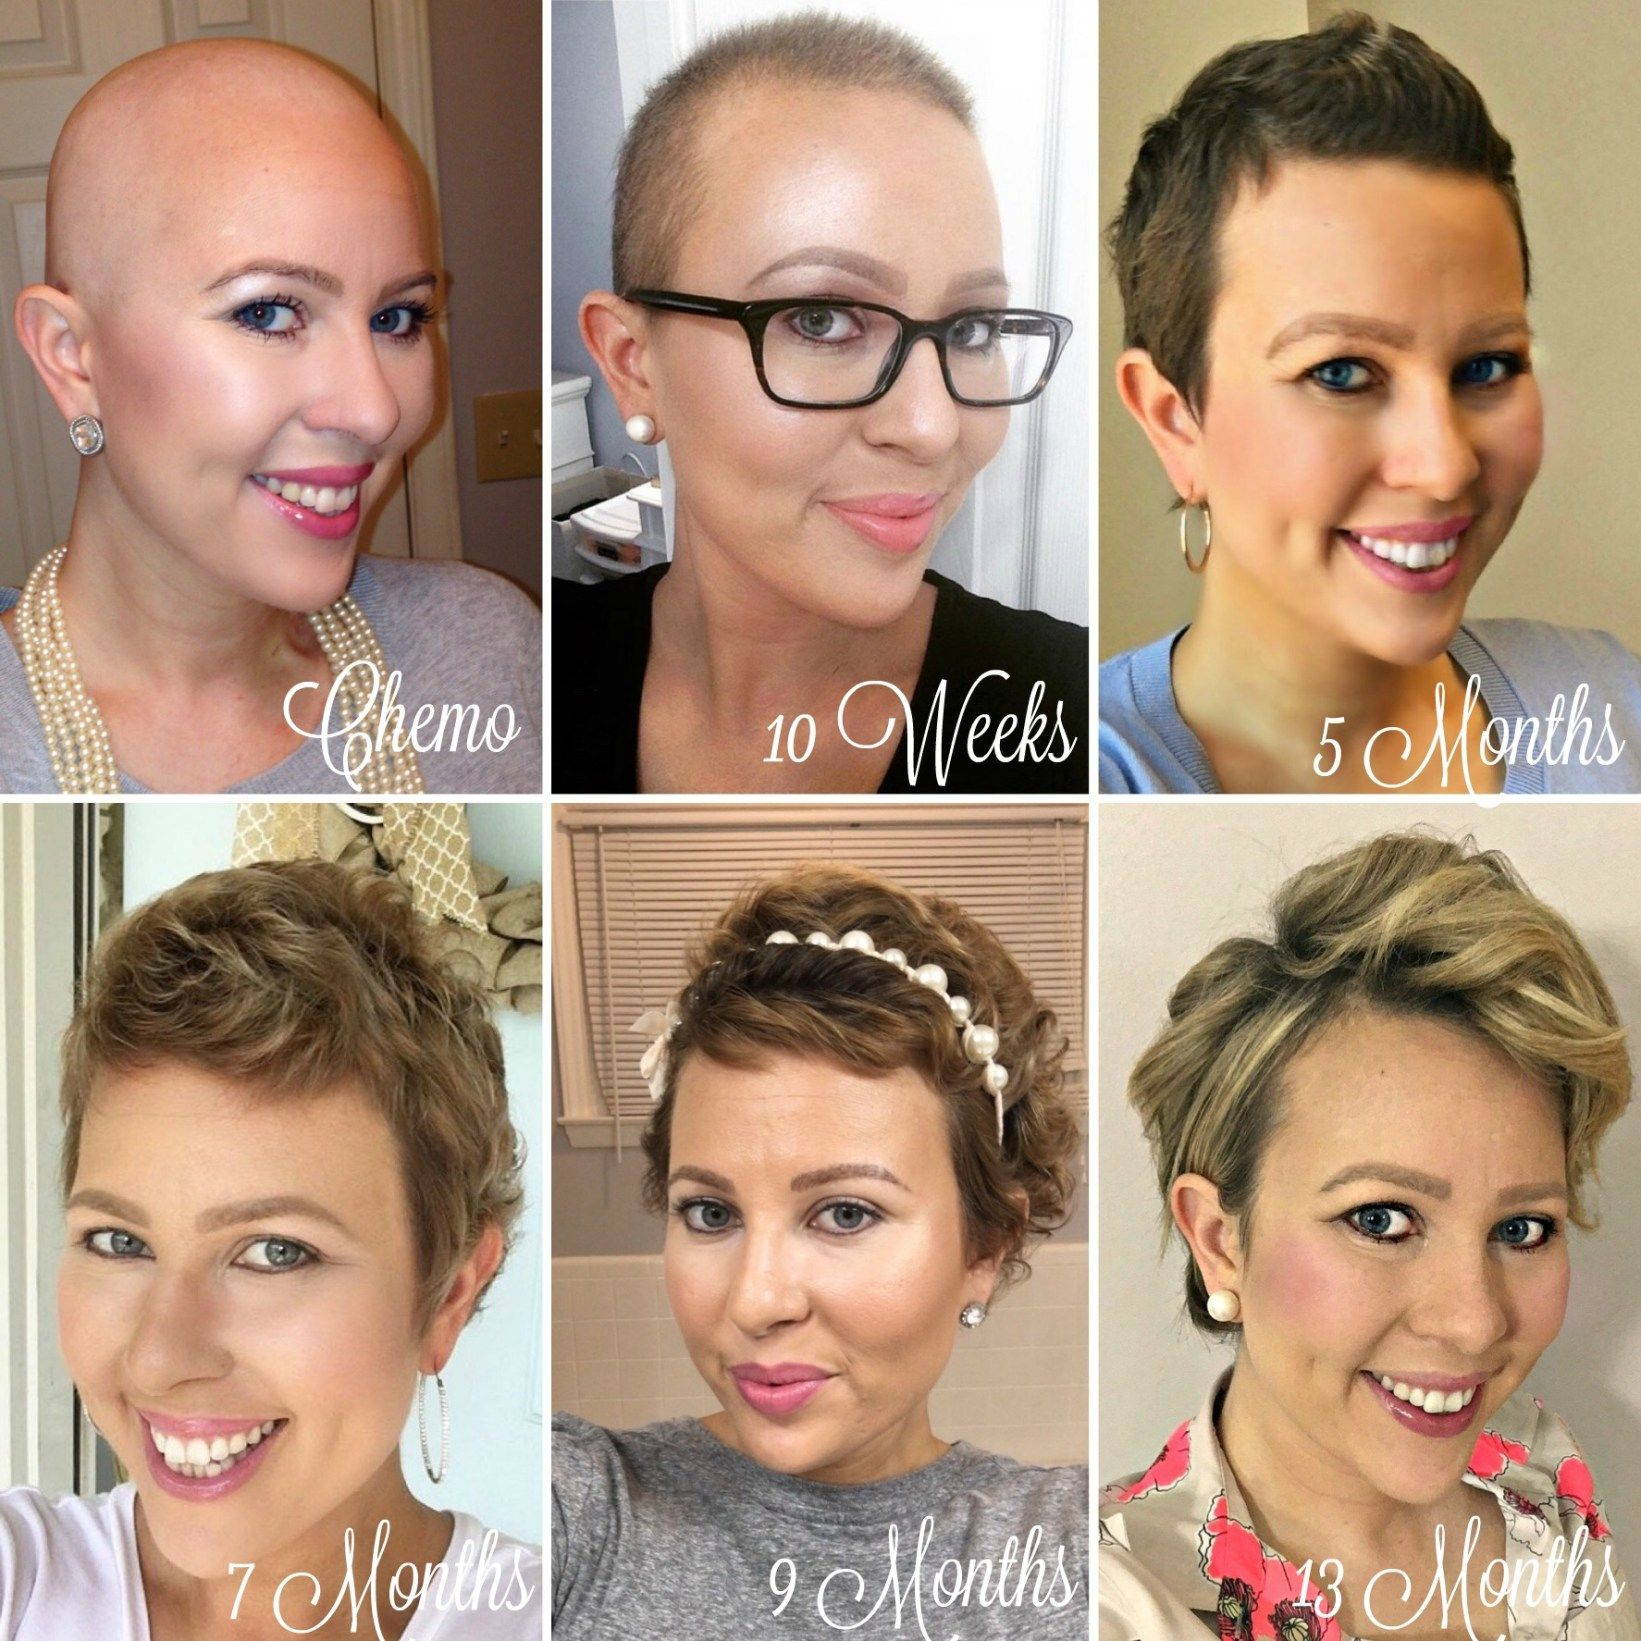 post-chemo hair growth & styling tips | dare to care | hair